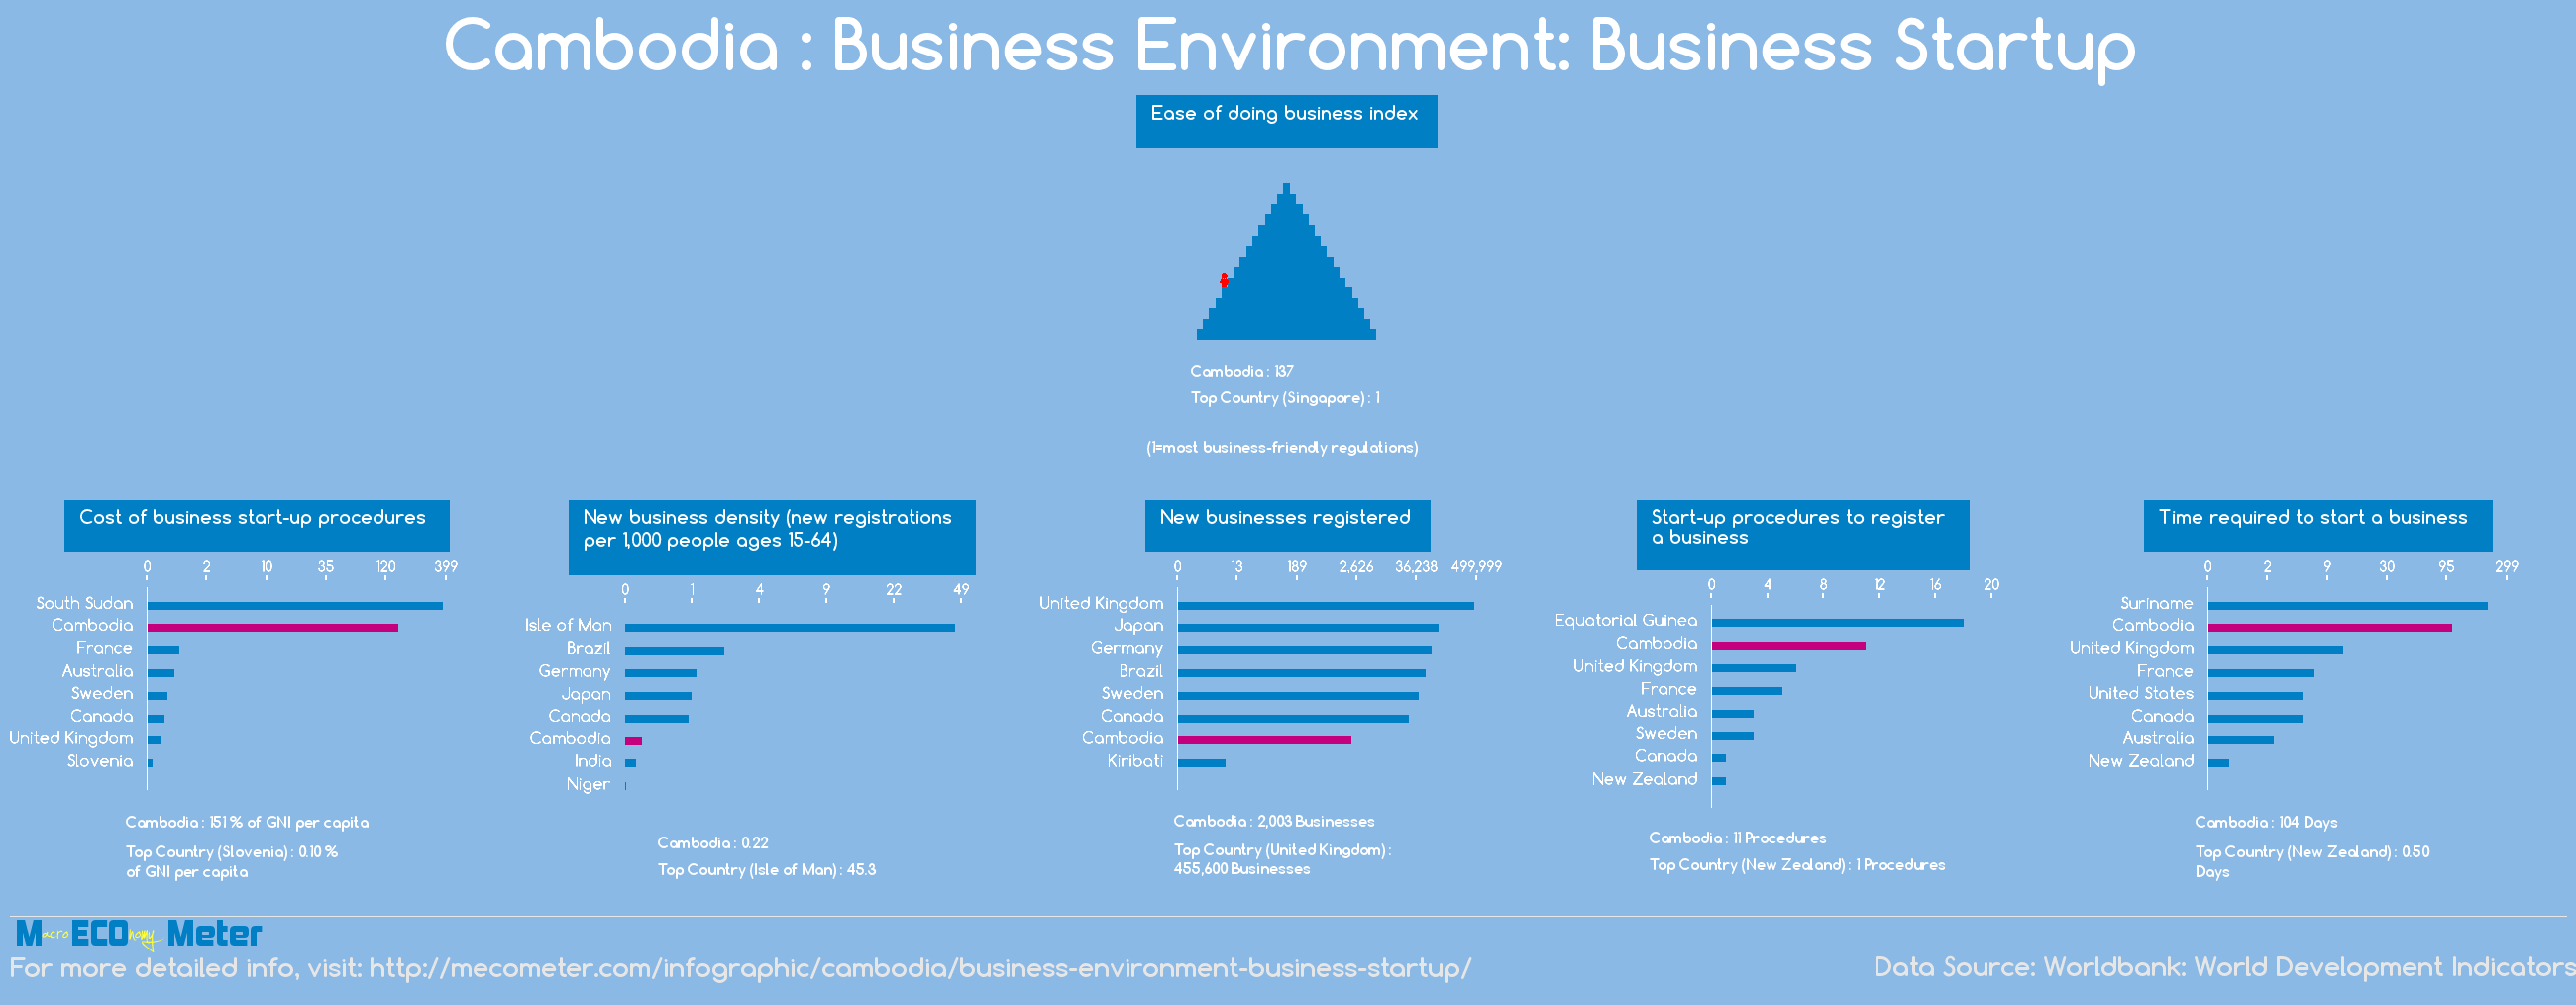 Cambodia : Business Environment: Business Startup